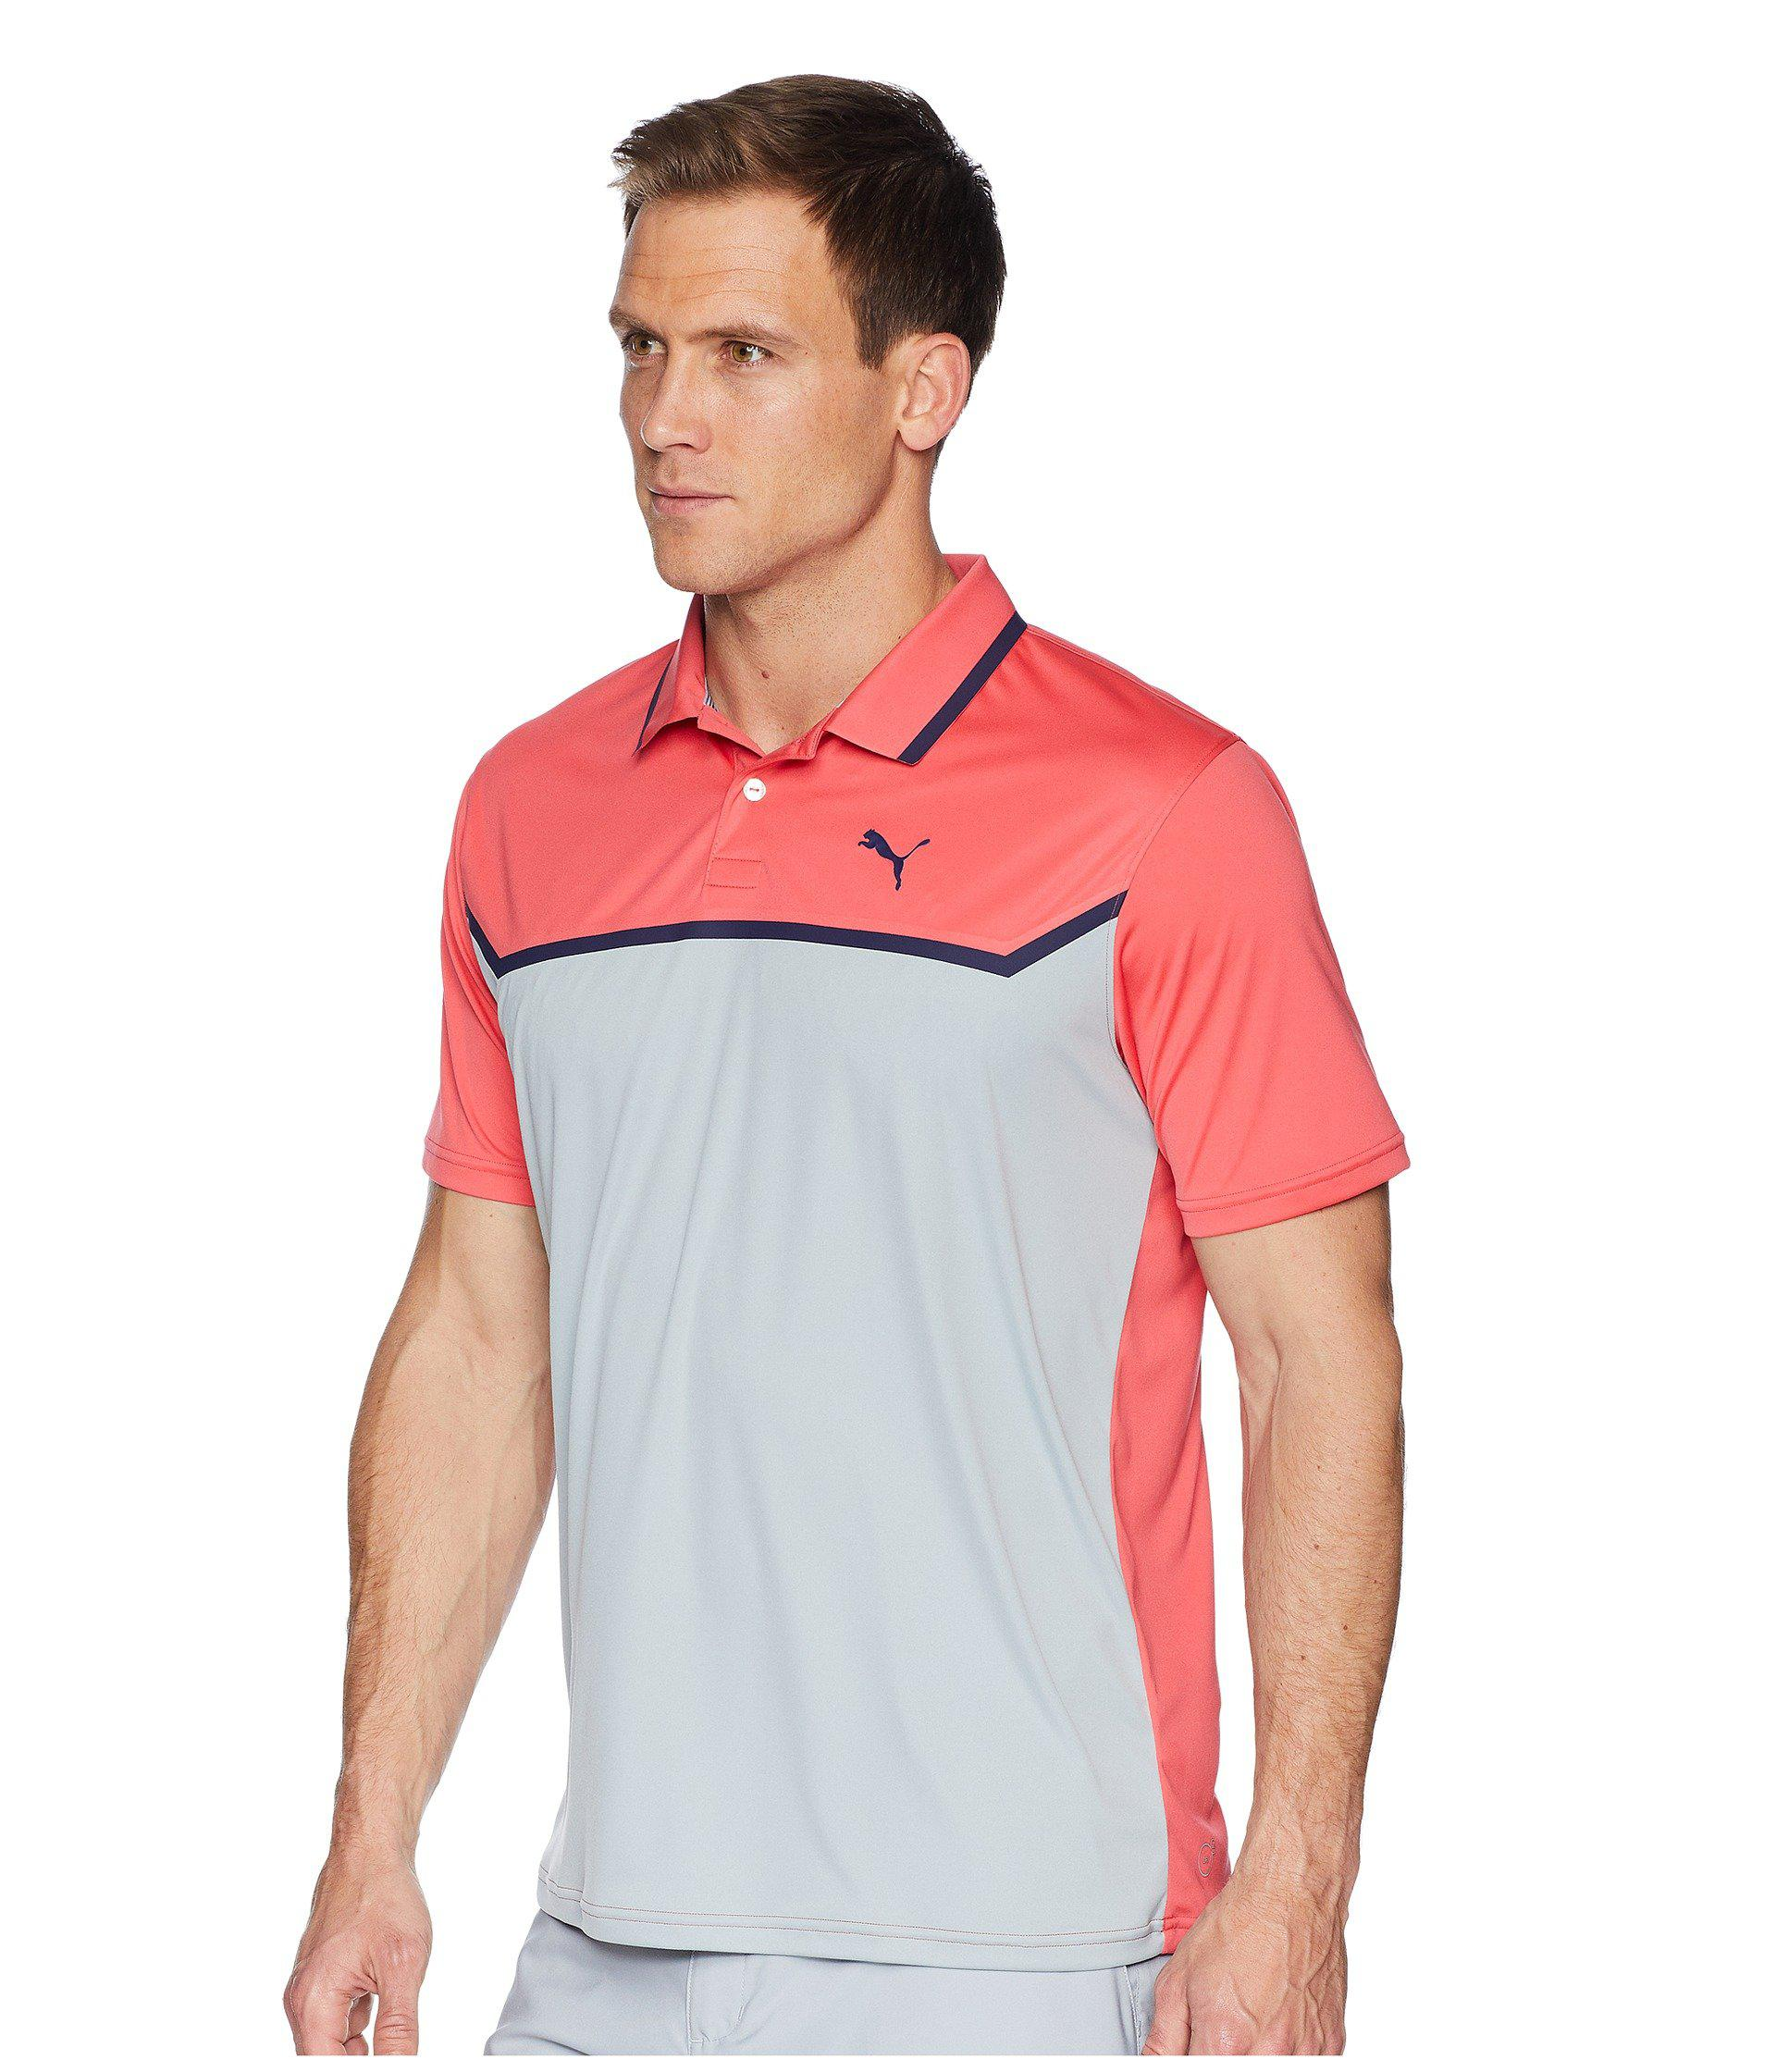 7ed982e6ef11 Lyst - PUMA Bonded Tech Polo in Pink for Men - Save 39%